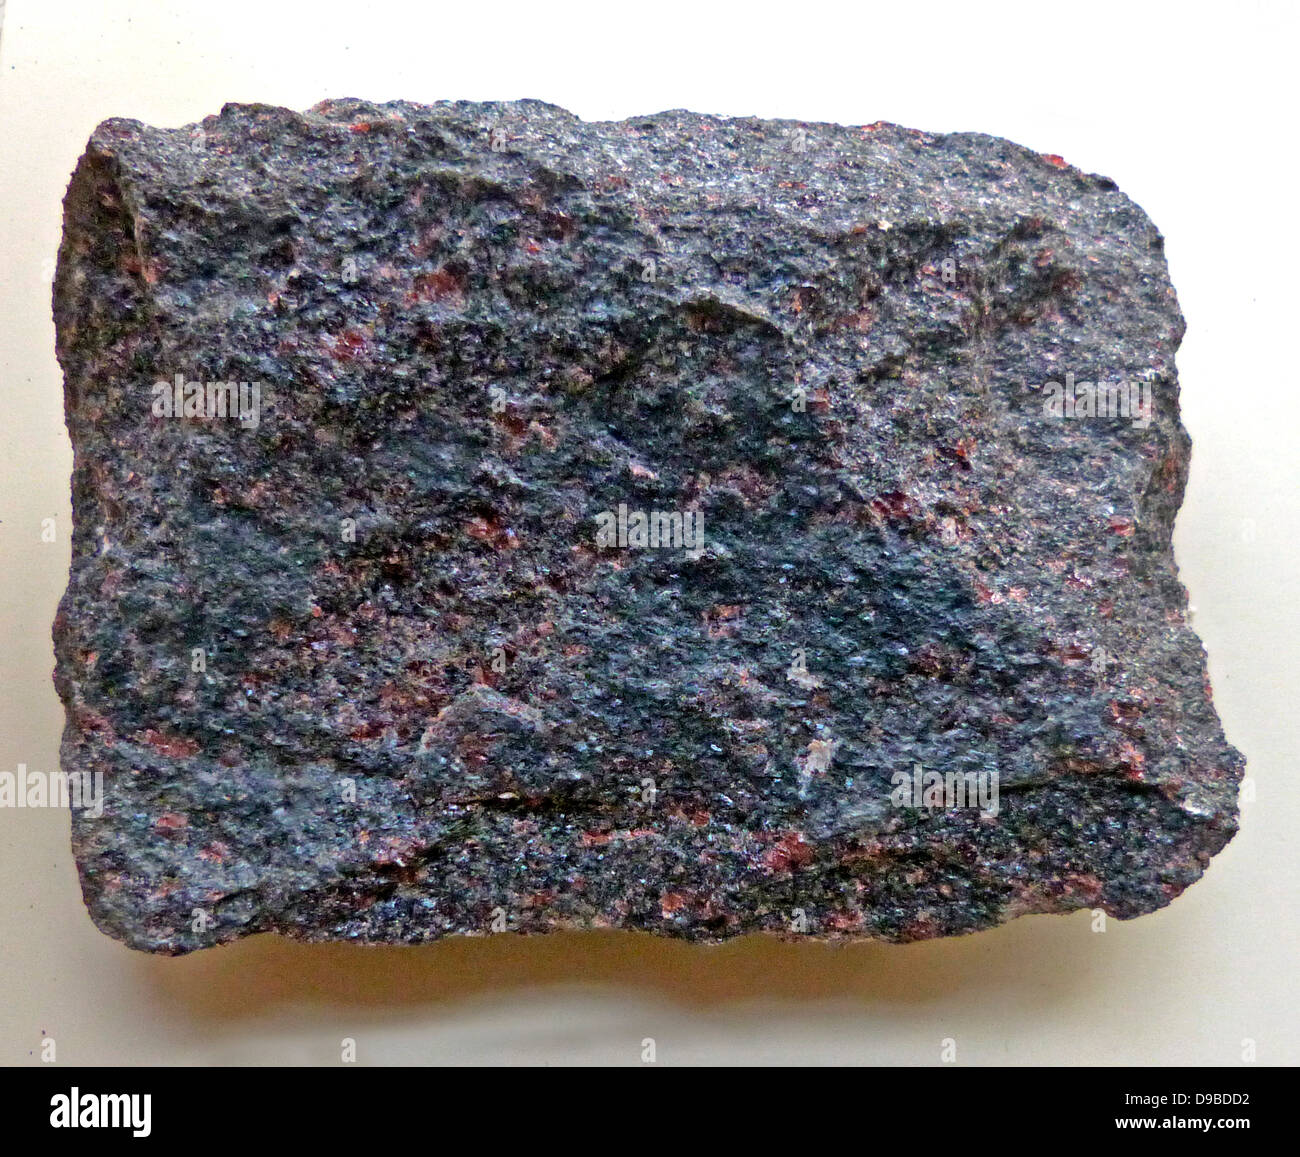 Eclogite ( is a colourful rock that is formed within the Earth under great temperatures, mafic (basaltic in composition) - Stock Image